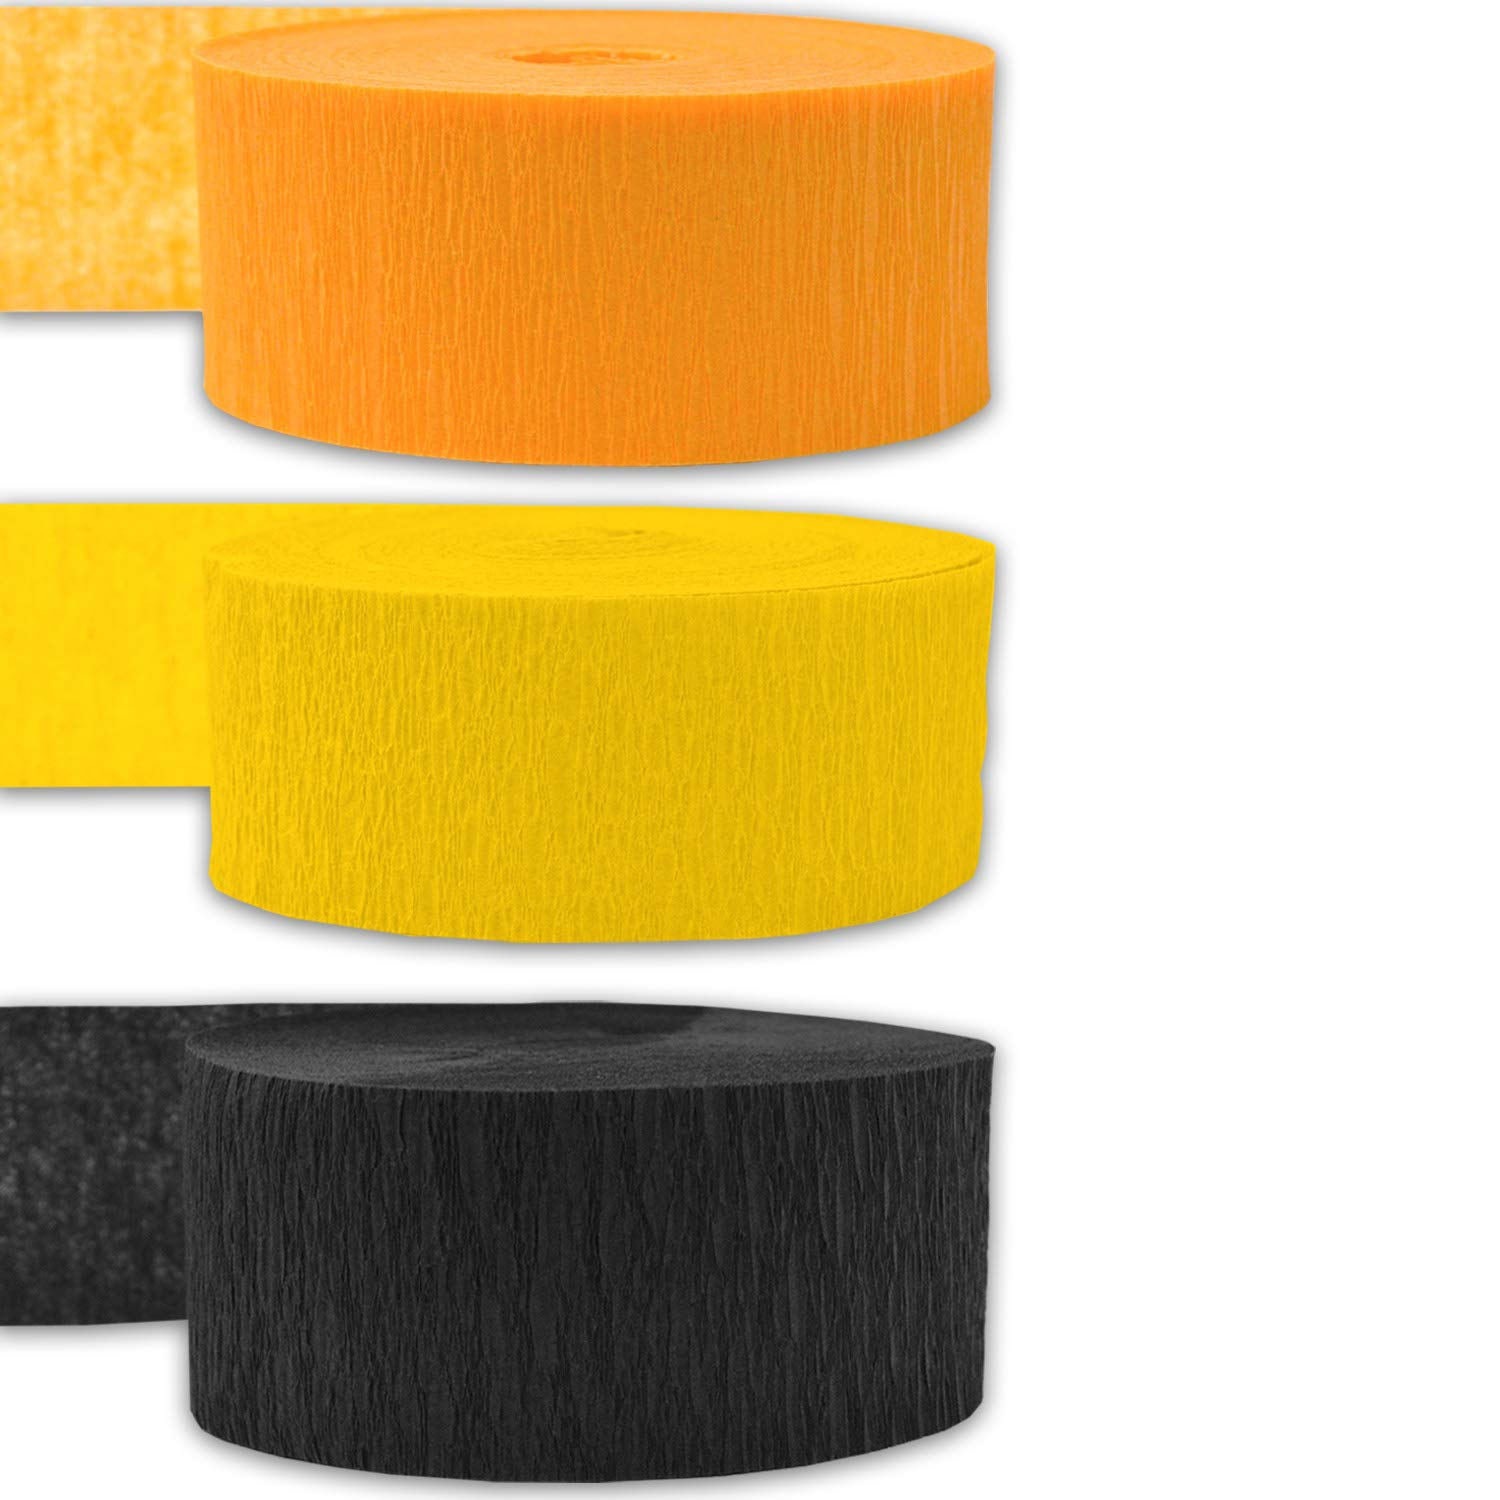 Bleed Resistant - For party Decorations and Crafts 9 rolls Flame Resistant Classic Yellow 243 per color 3 Colors 739 ft Crepe Party Streamers Made in USA Golden Yellow Black 3 rolls per color, 81 foot each roll